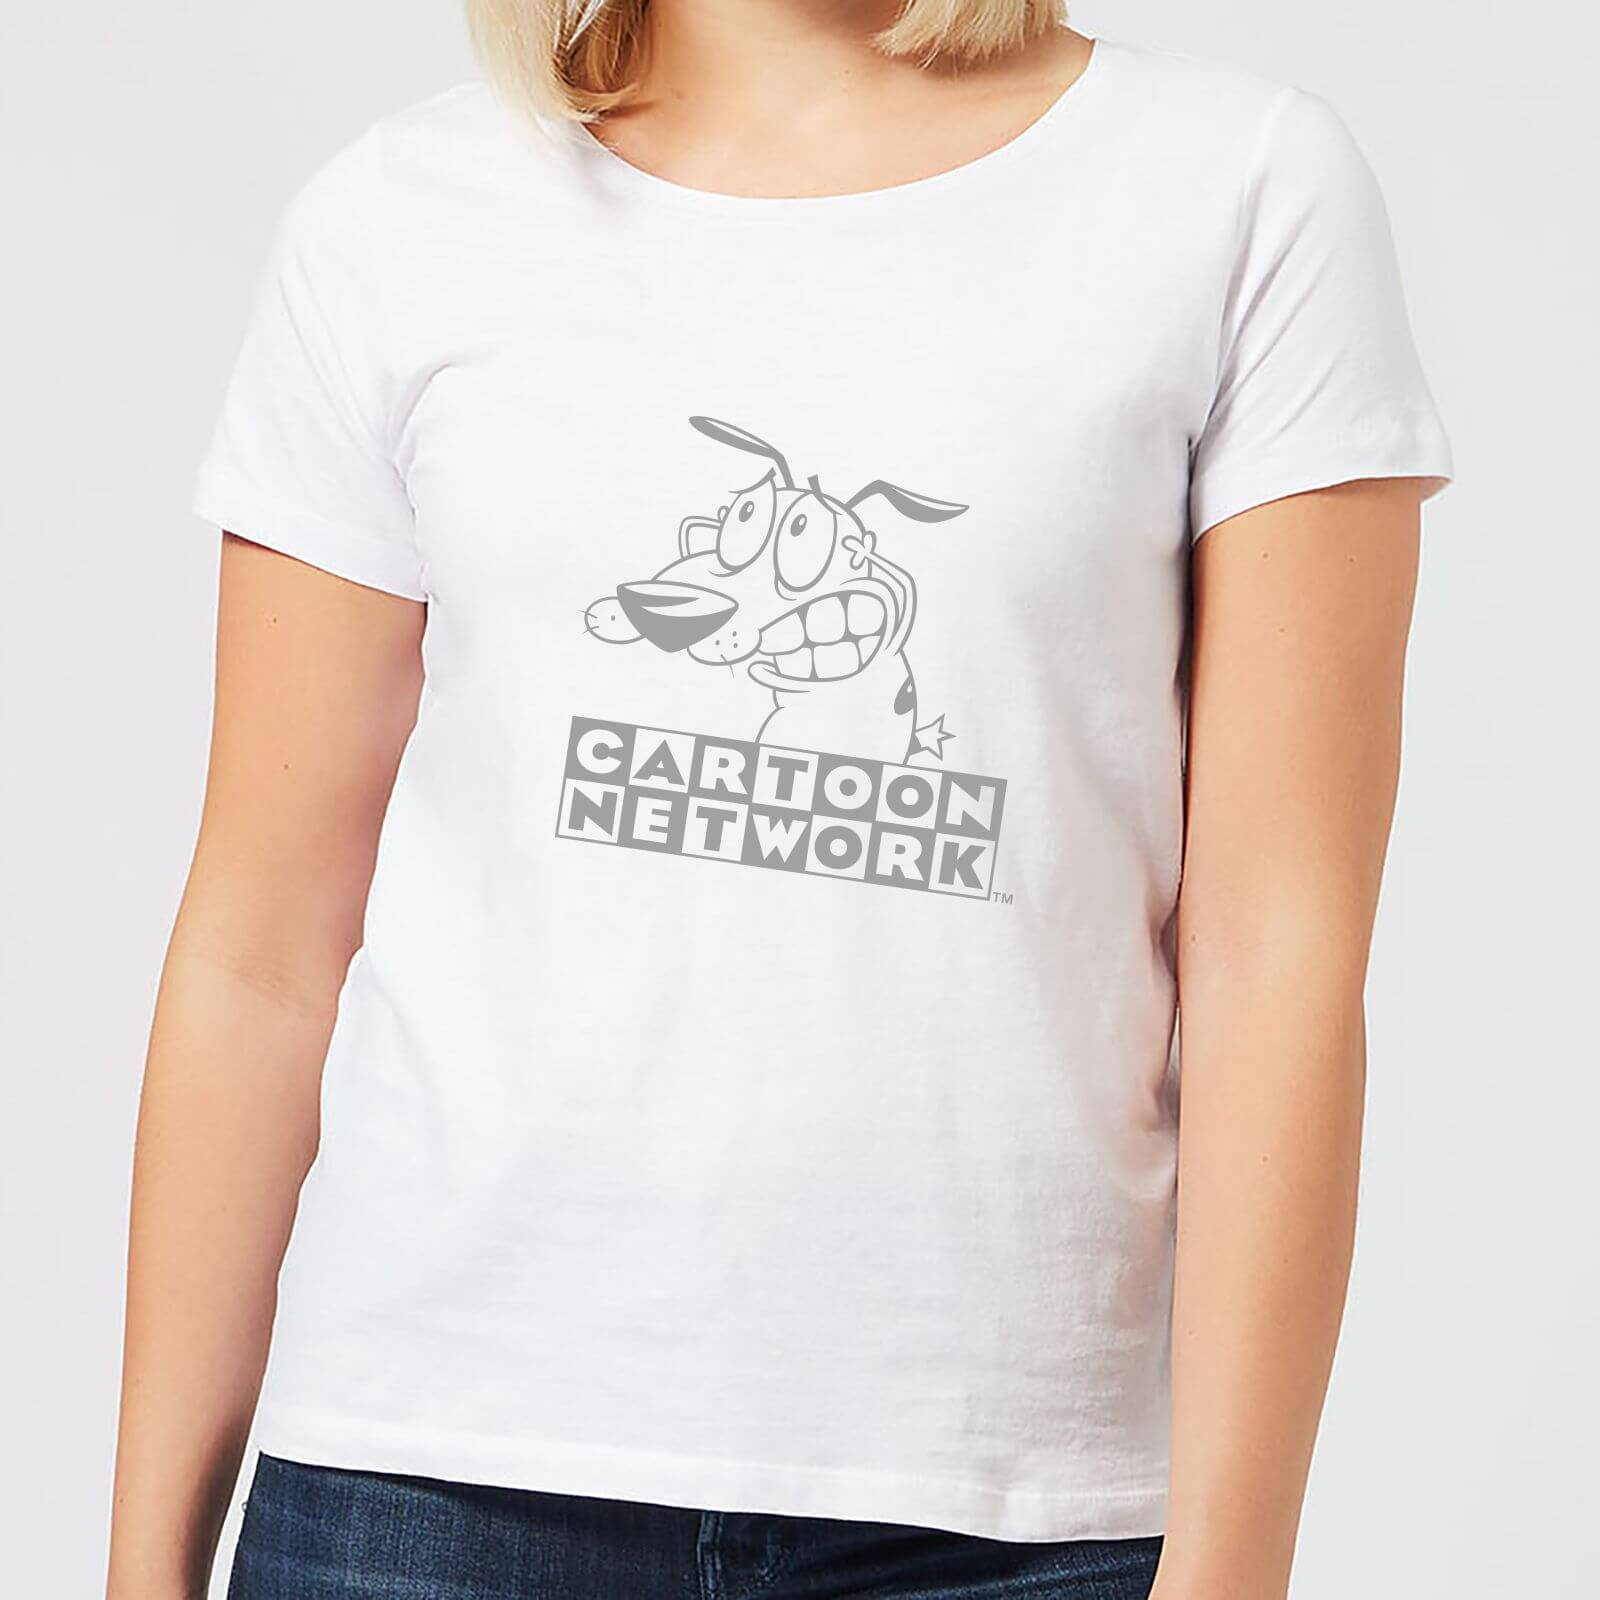 Cartoon Network Courage The Cowardly Dog Outline Women's T-Shirt - White - S - White